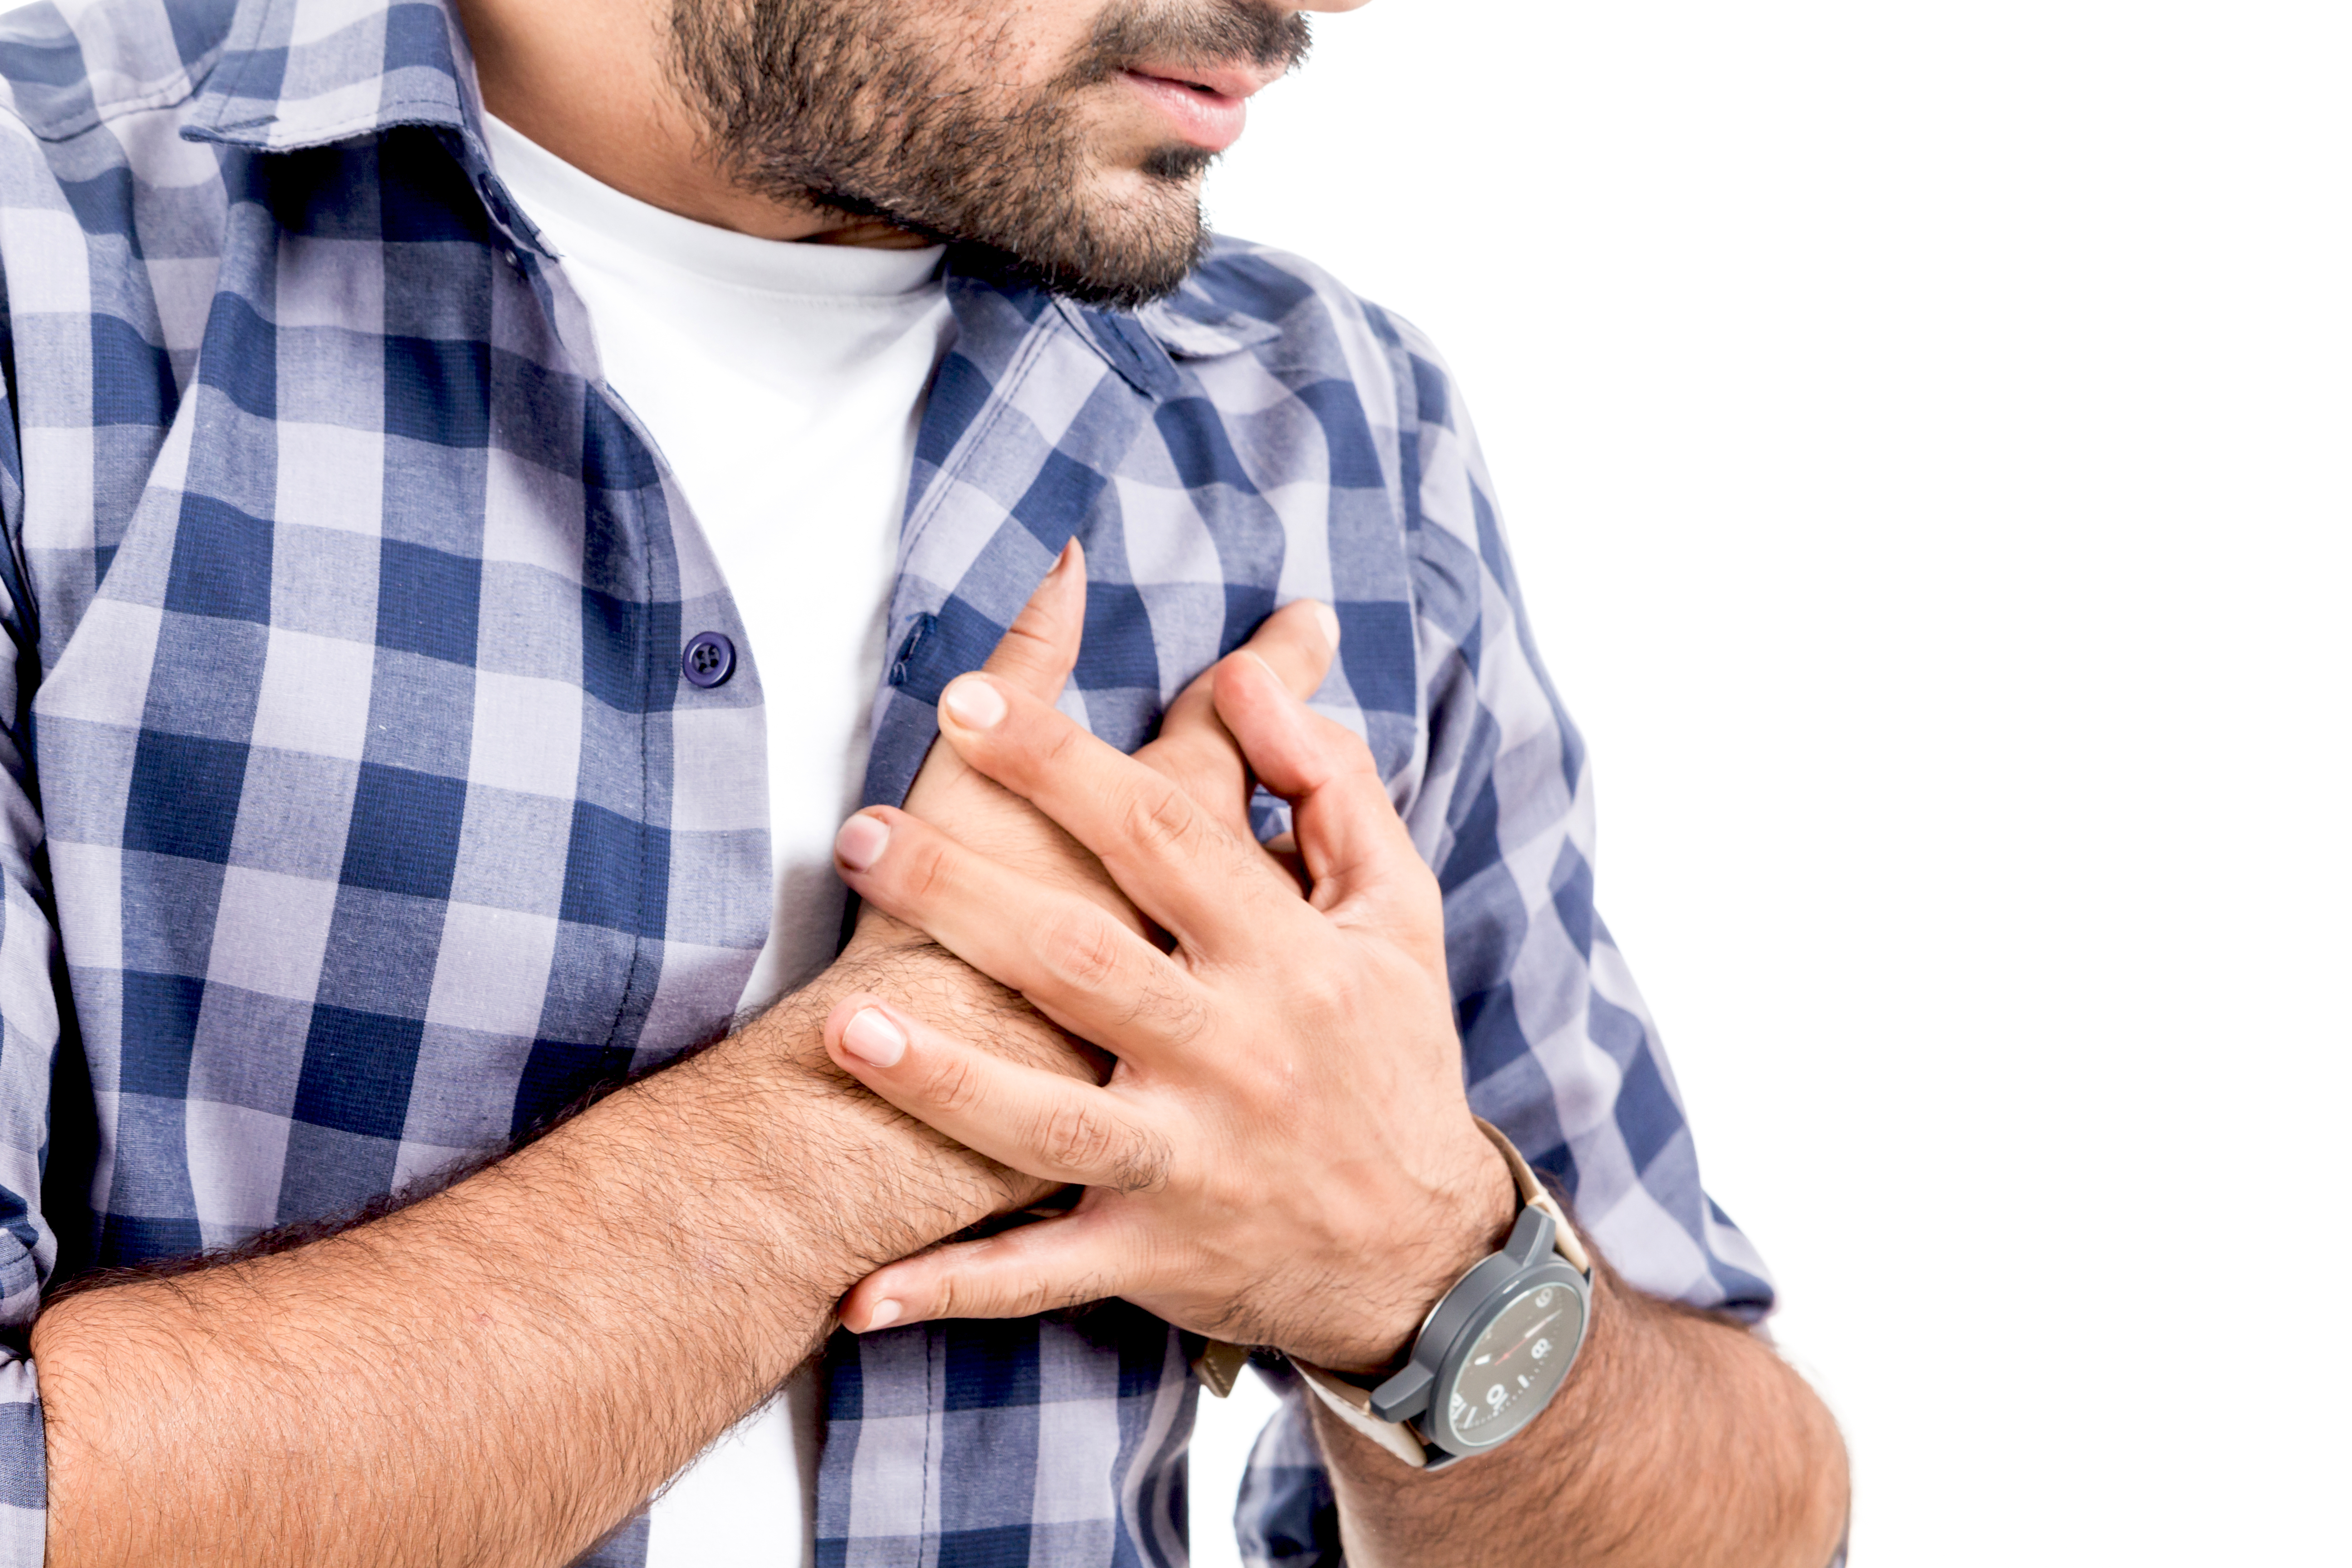 Thumping Heartbeat Causes, Solutions, When to See Doctor